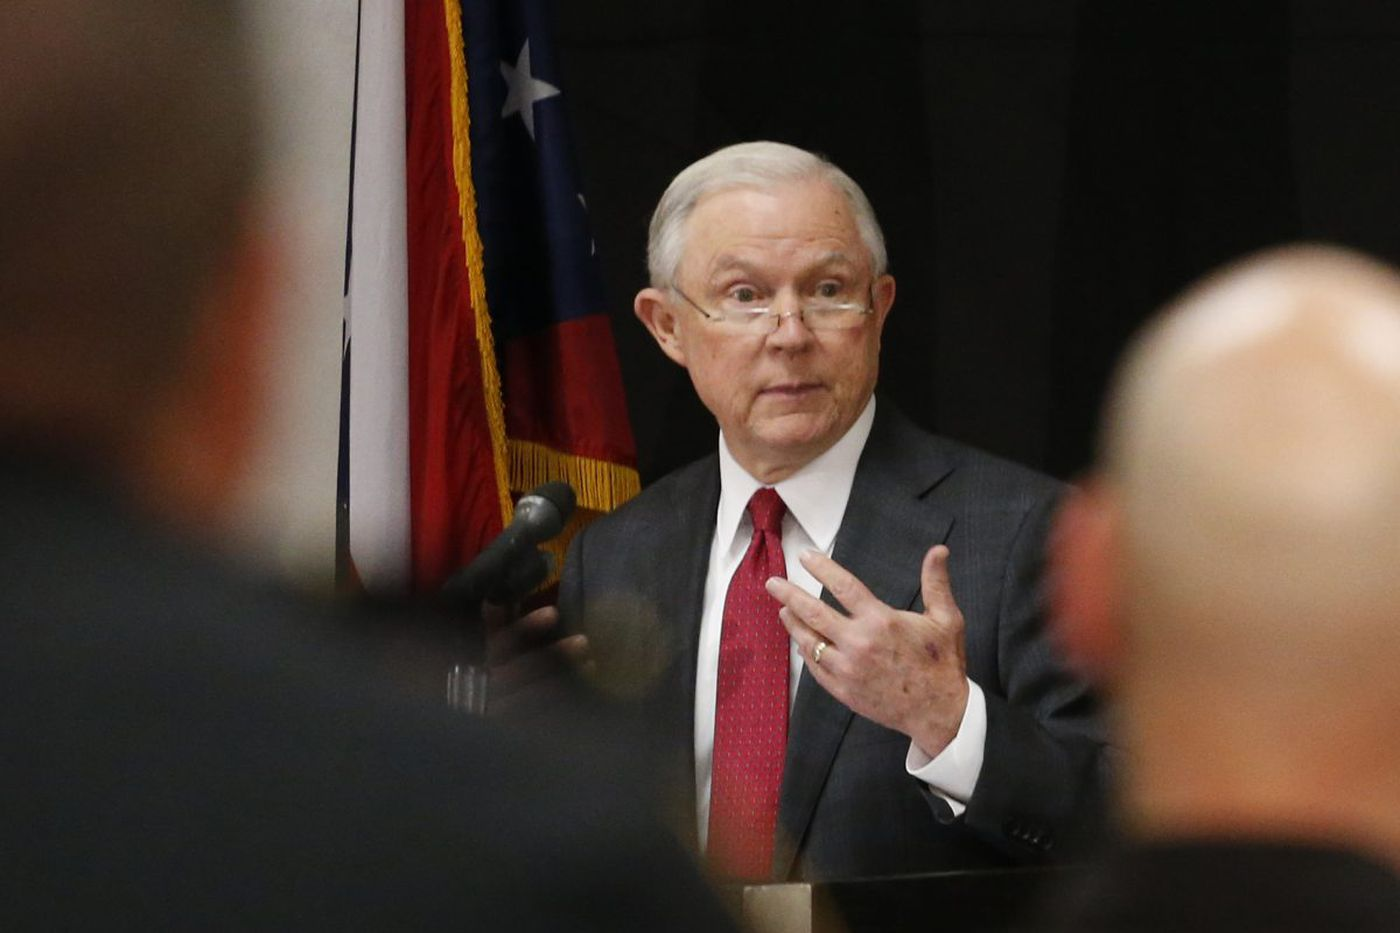 Good News: Sessions takes on affirmative action in college admissions